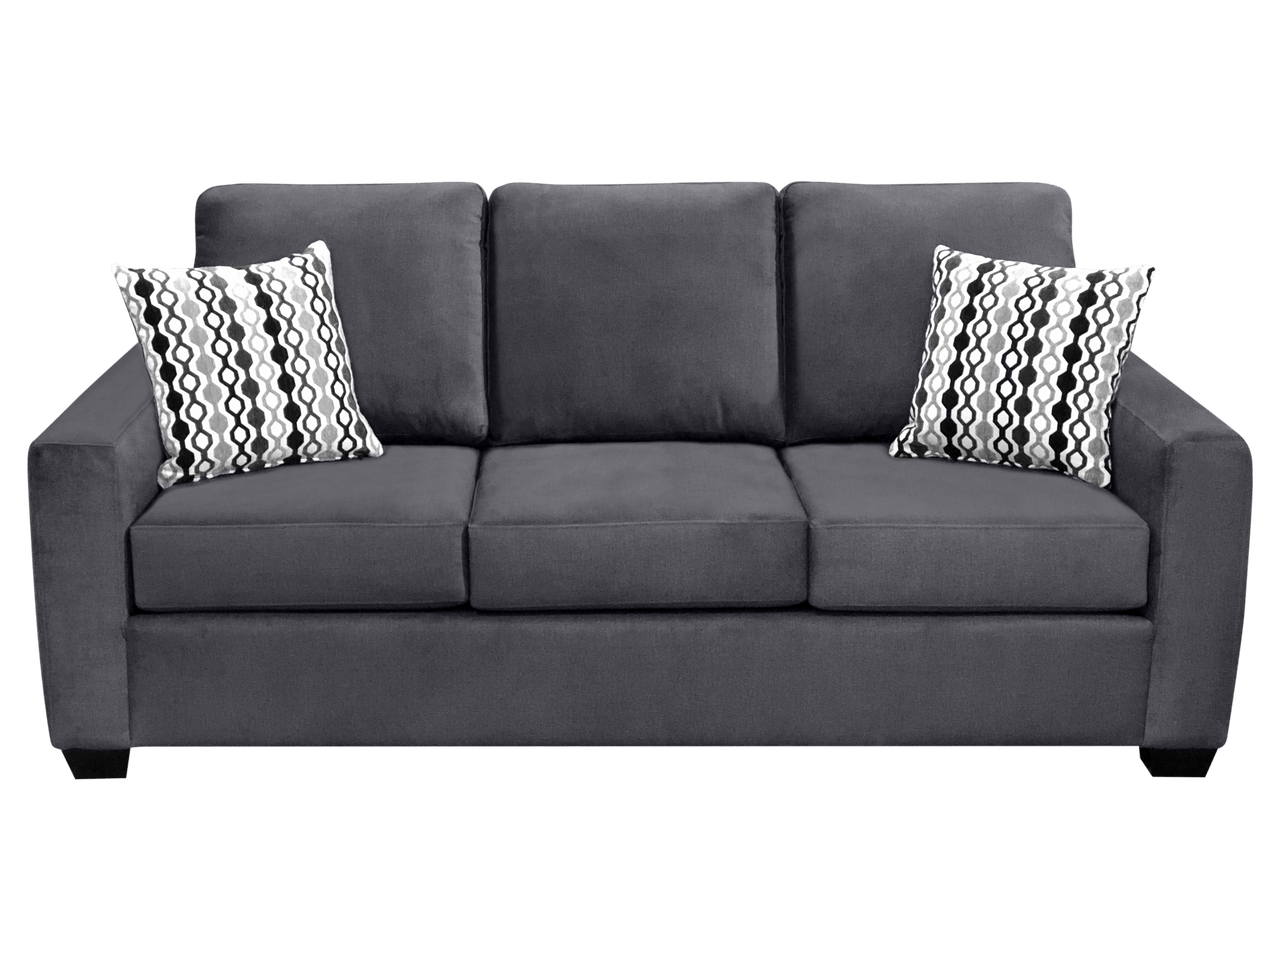 Tilly Fabric Sofa Queen Sleeper Sofa Queen